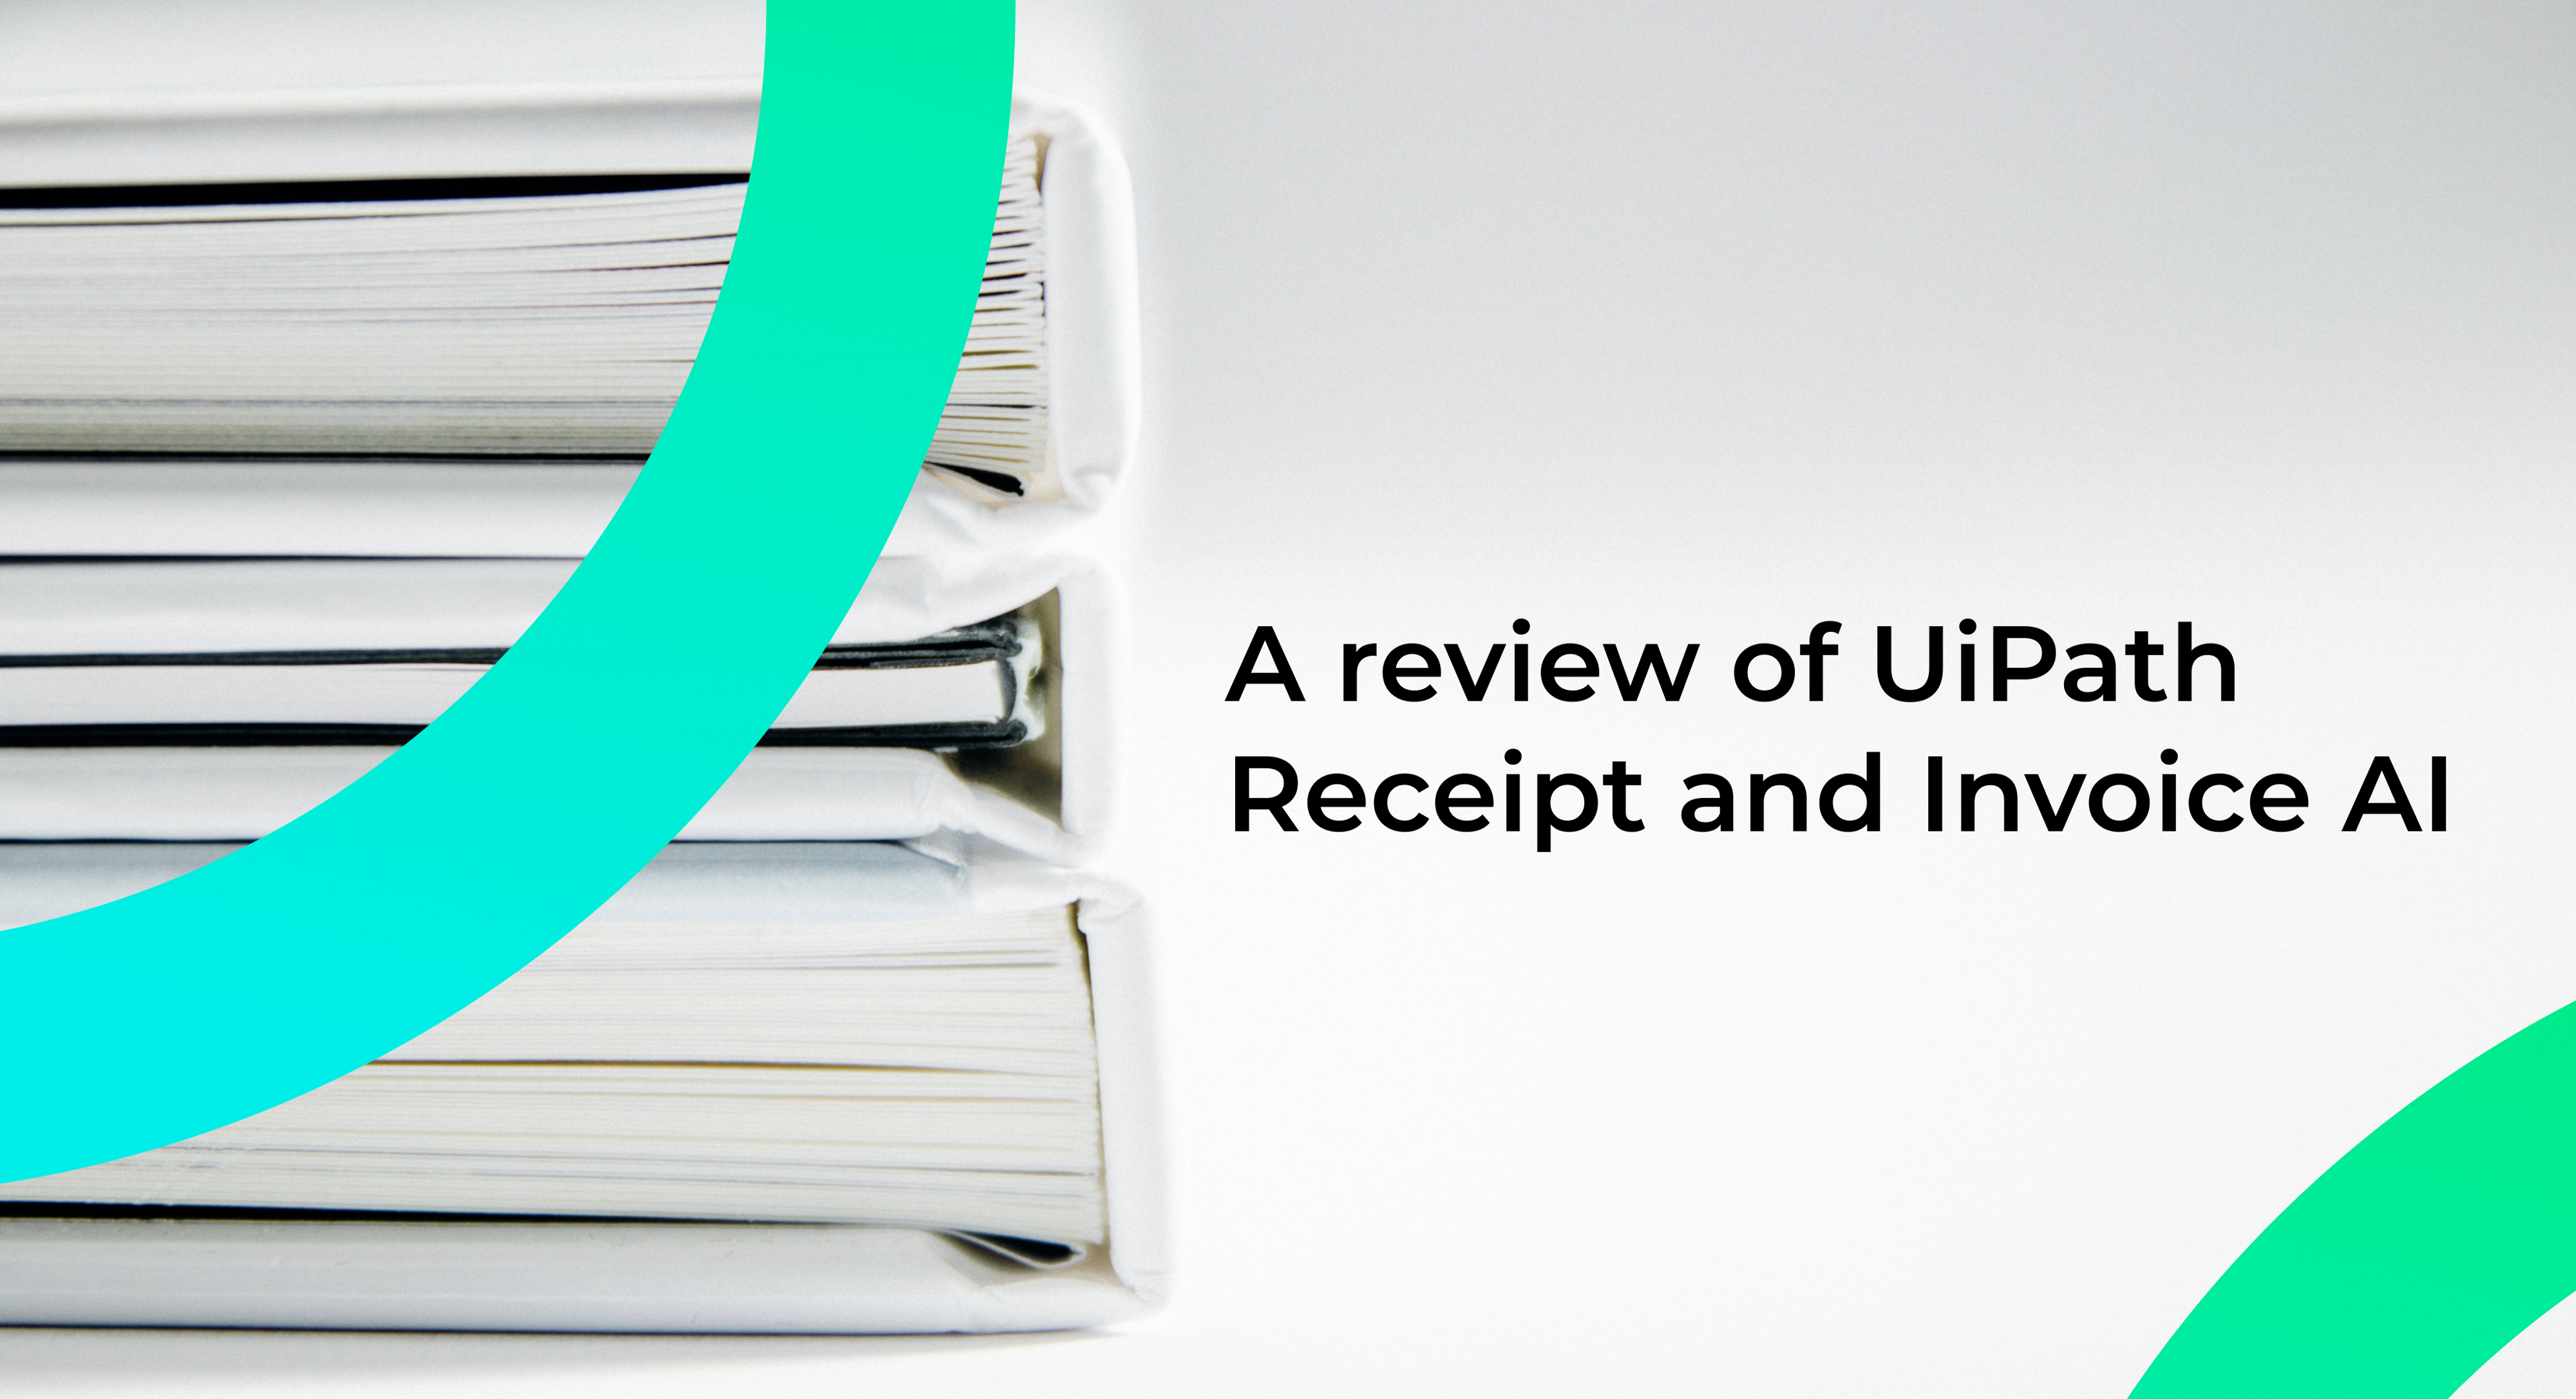 UiPath Receipt and Invoice Extractor — the new solution in